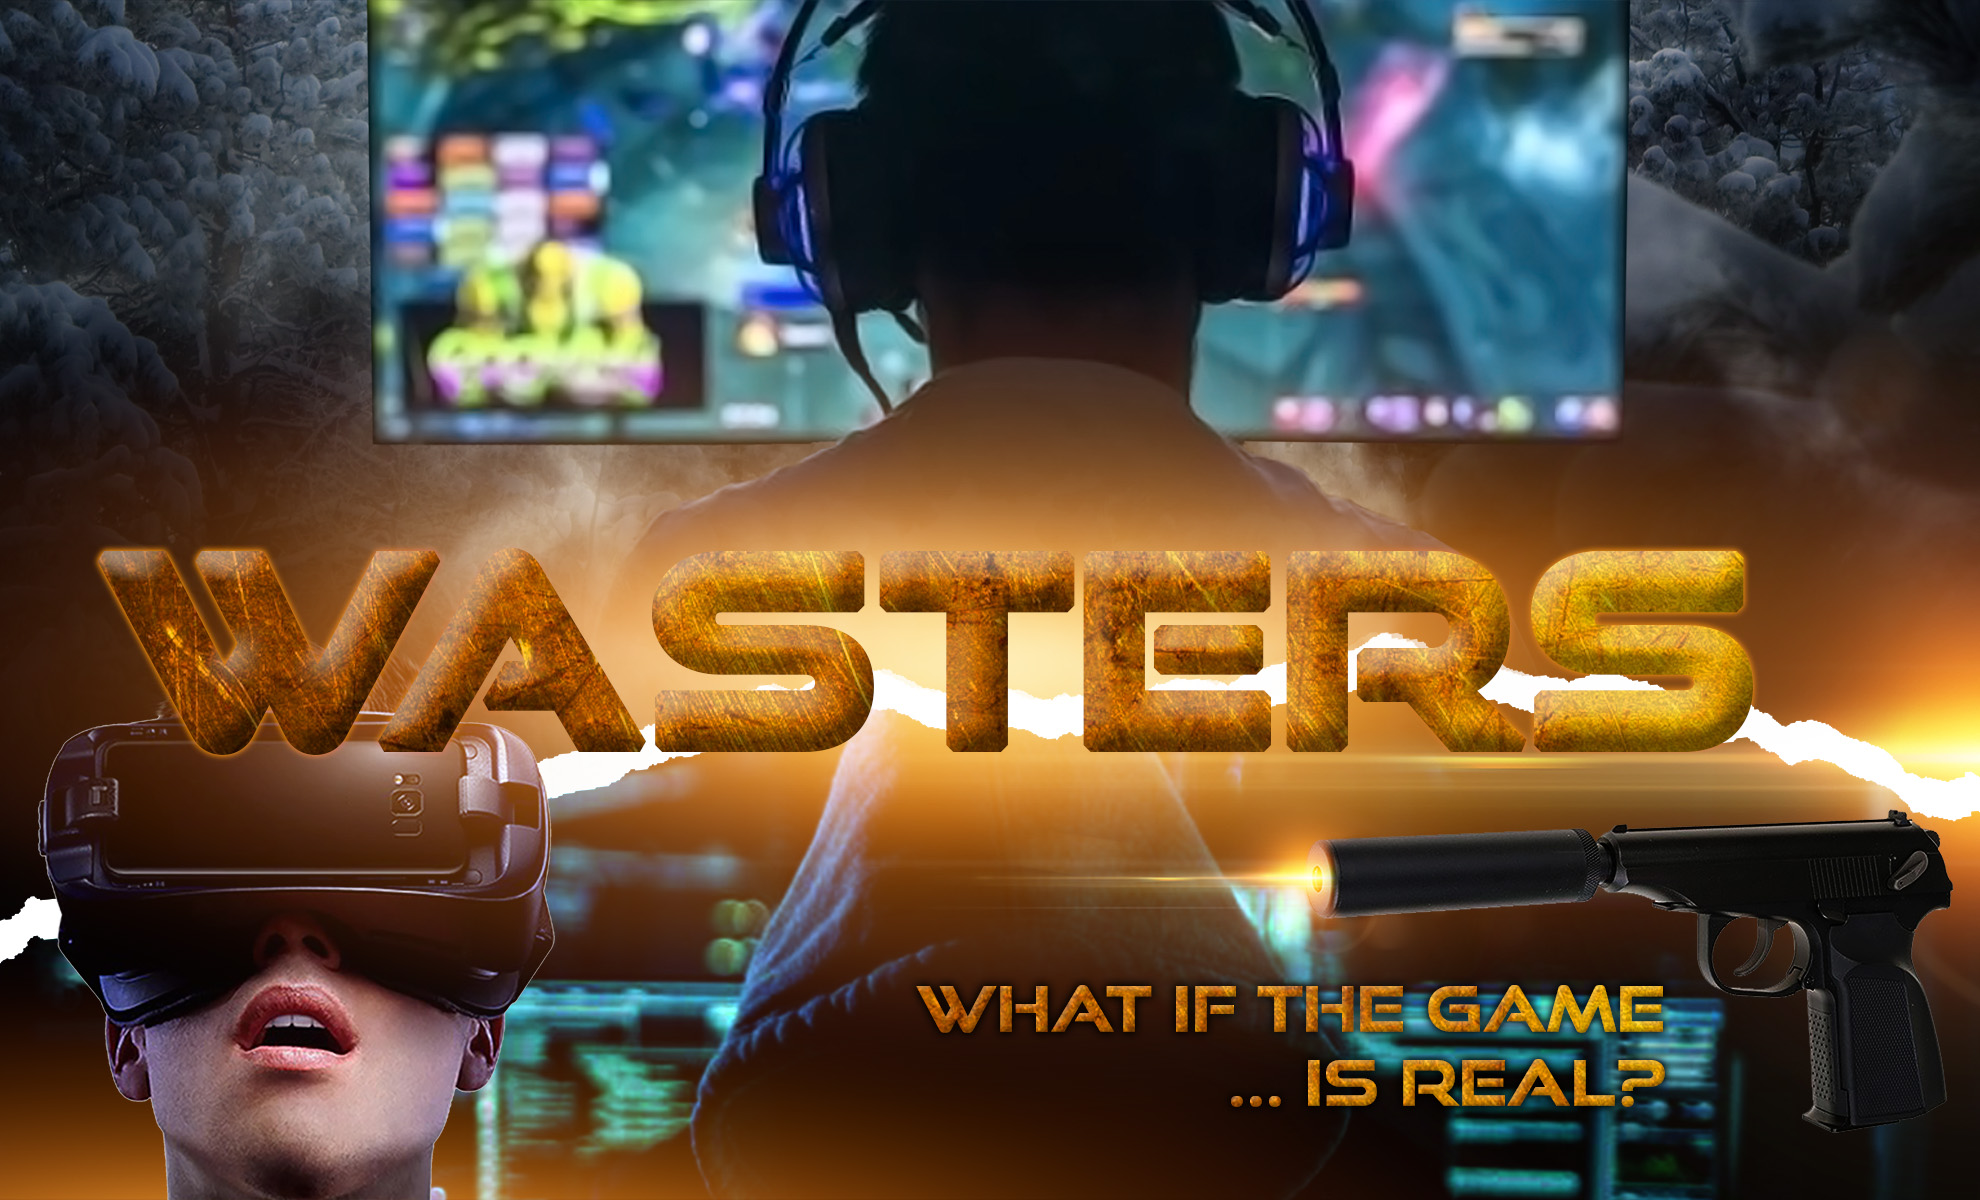 Wasters: What If The Game ... Is Real?